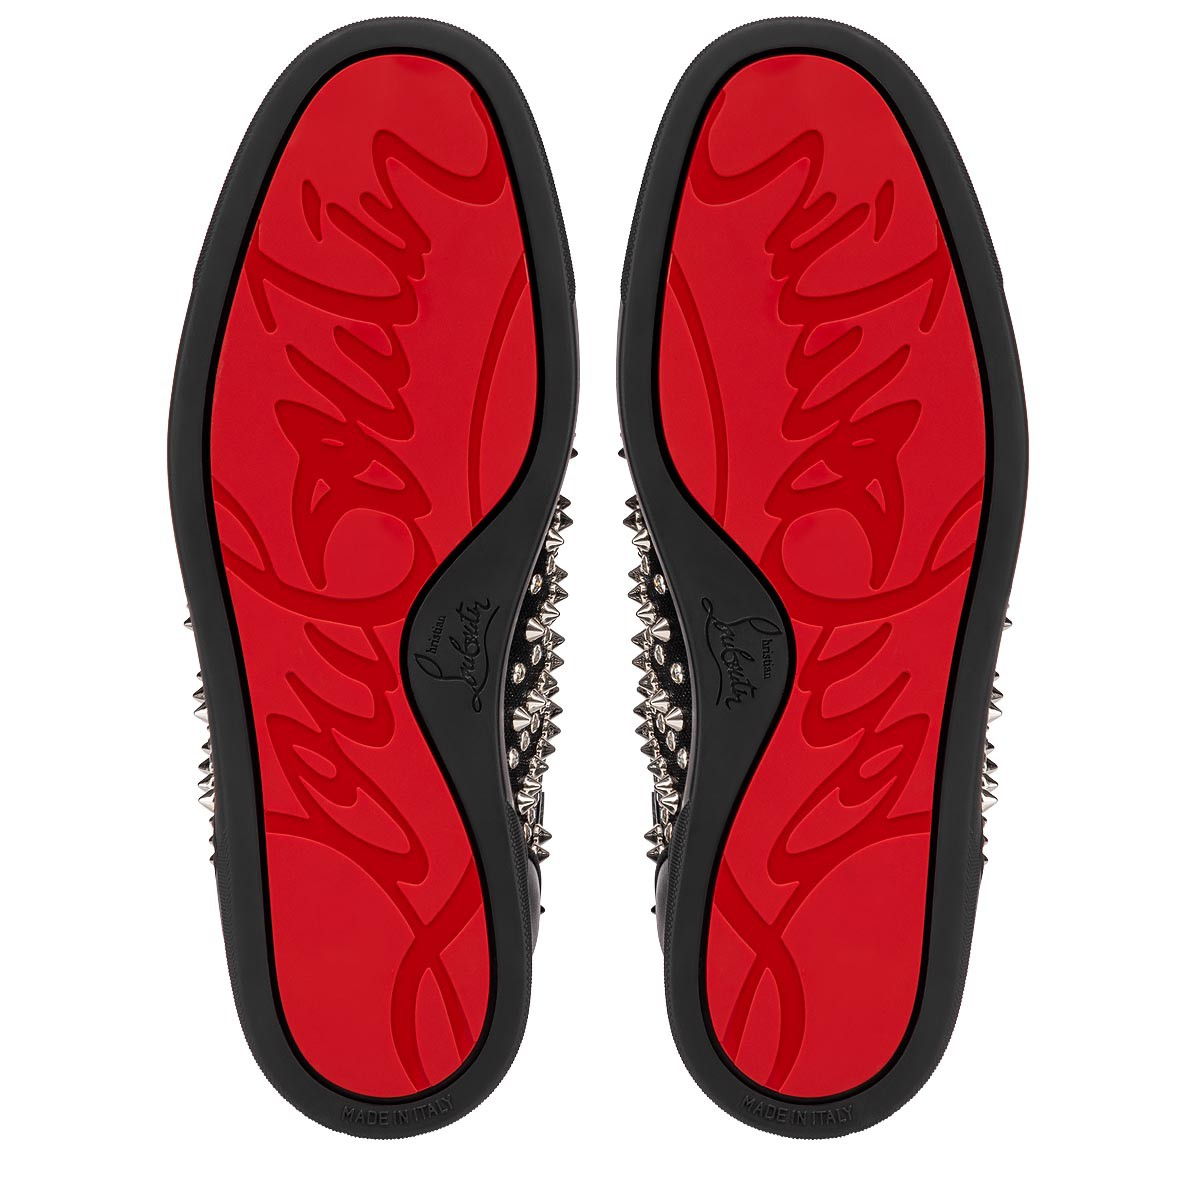 Men Shoes - Louis 1c1s - Christian Louboutin